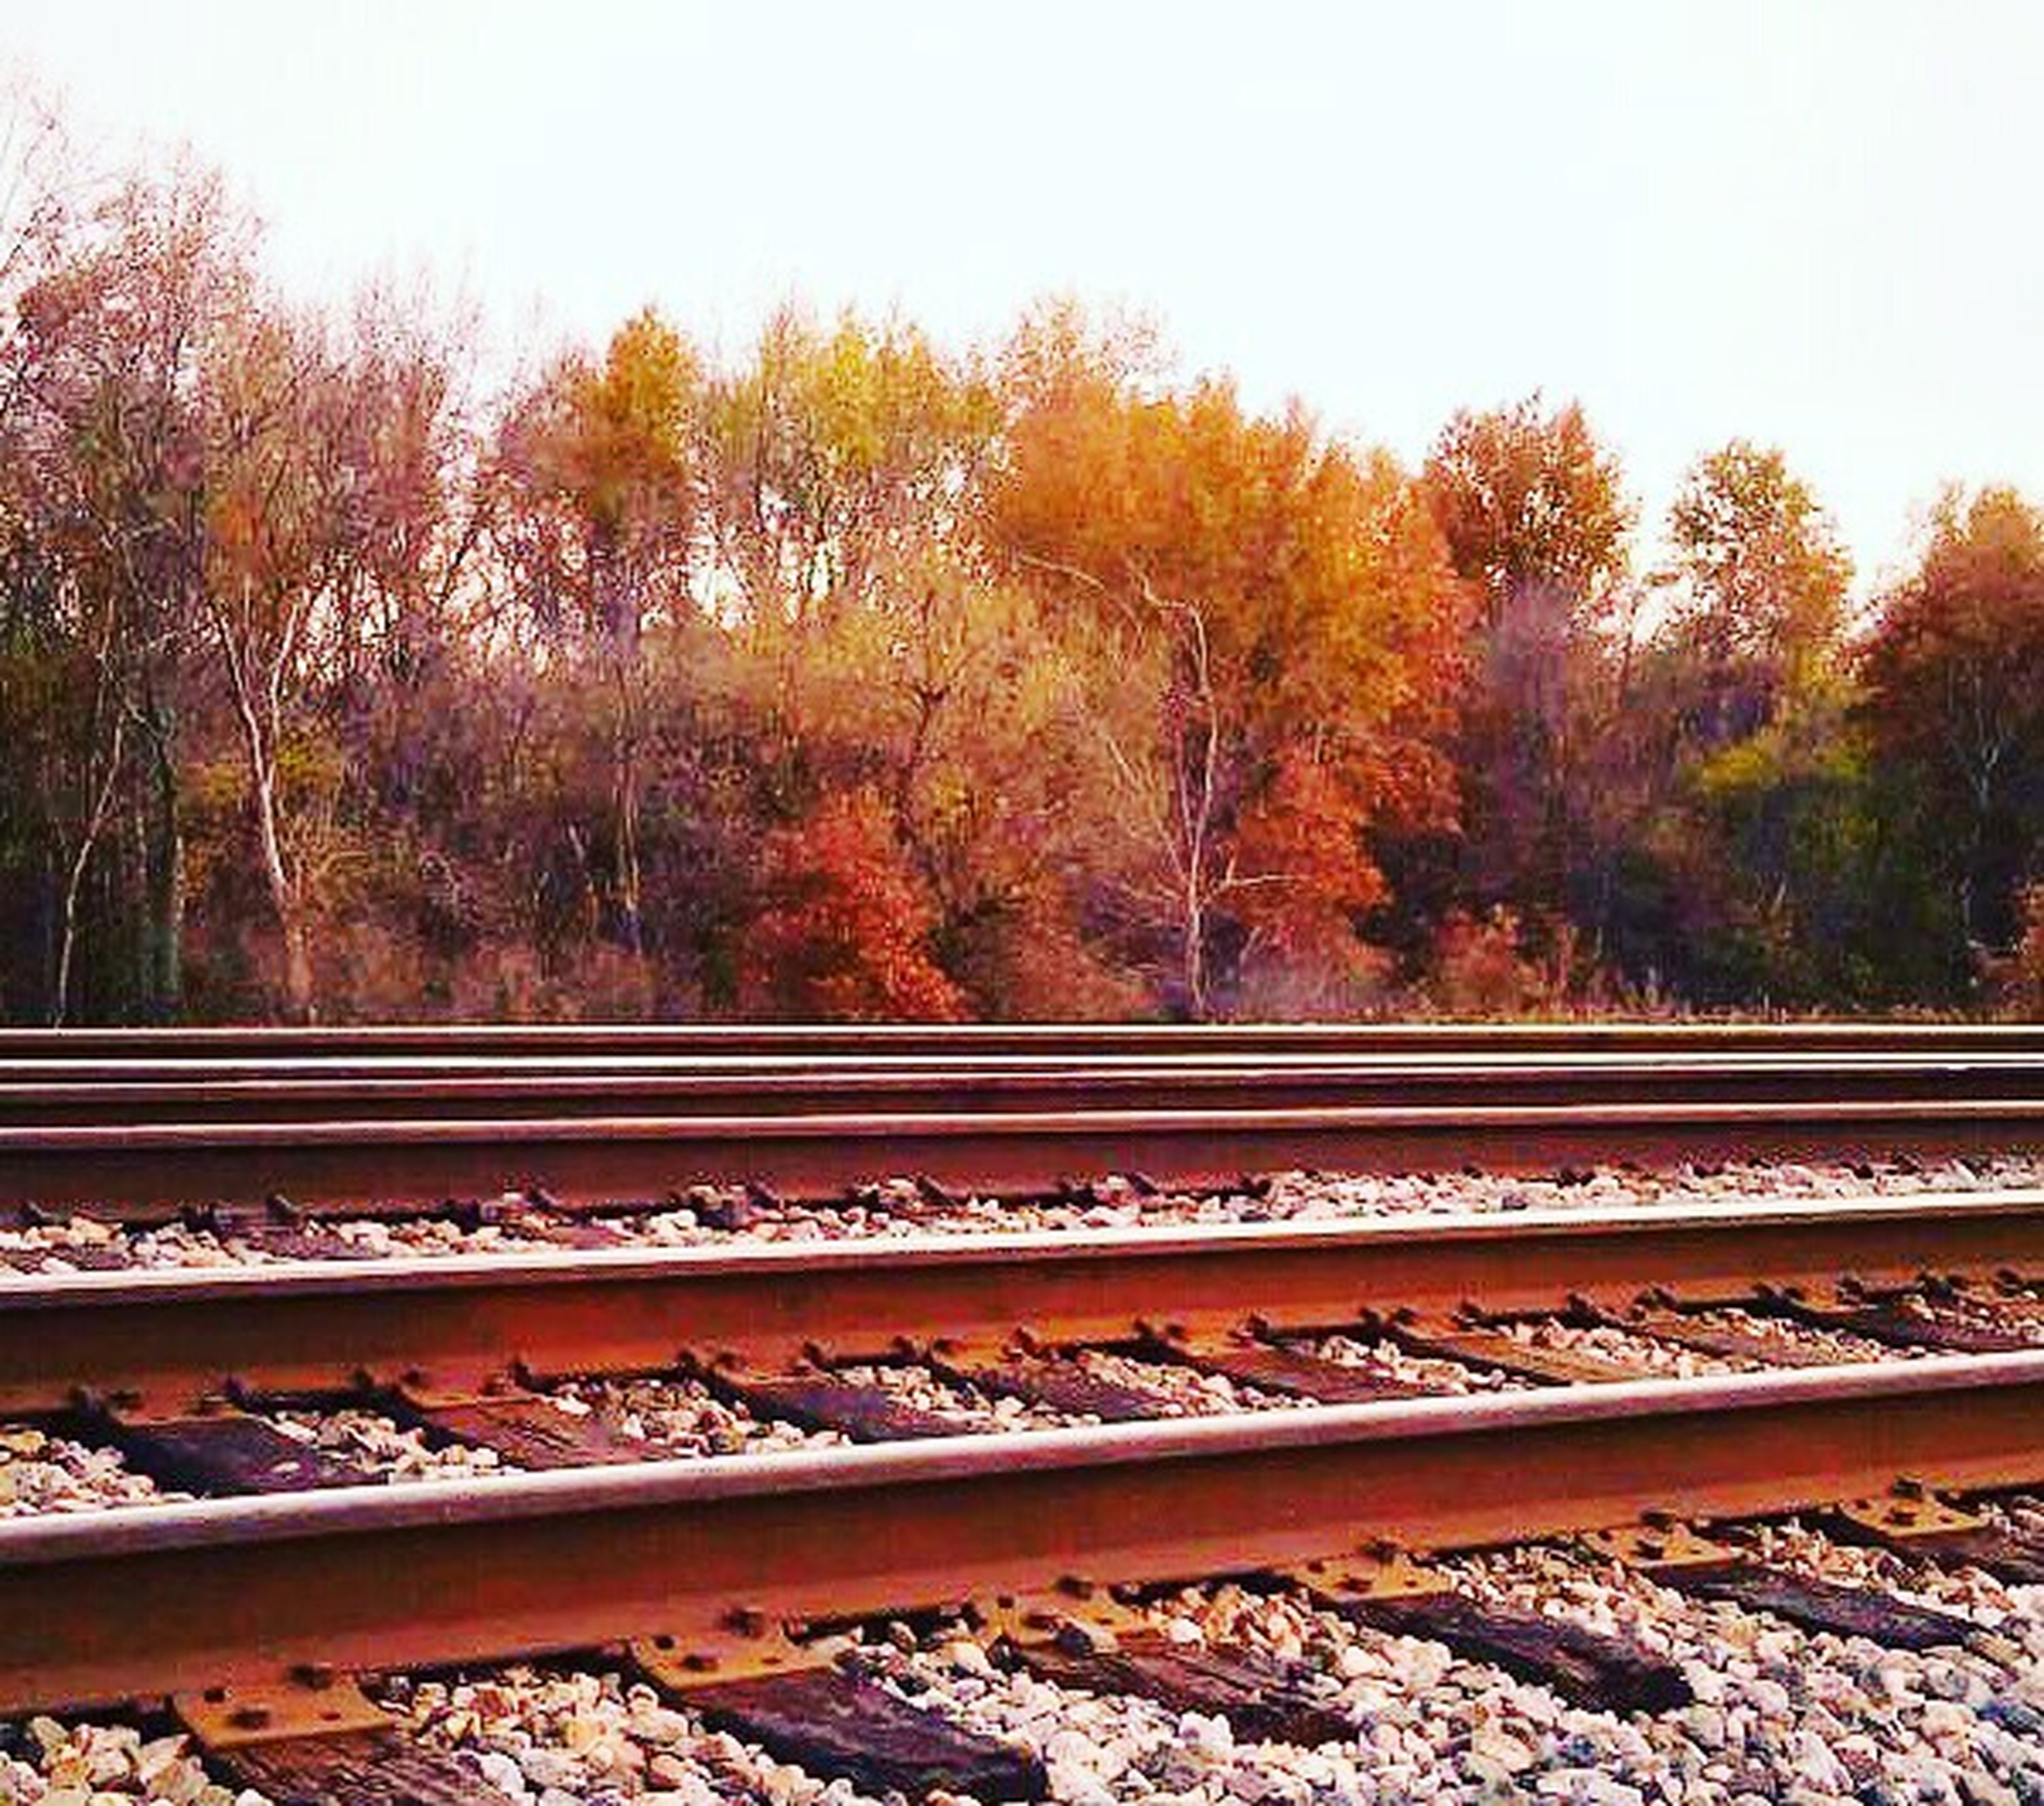 tree, change, rail transportation, railroad track, autumn, bench, nature, outdoors, transportation, no people, day, beauty in nature, sky